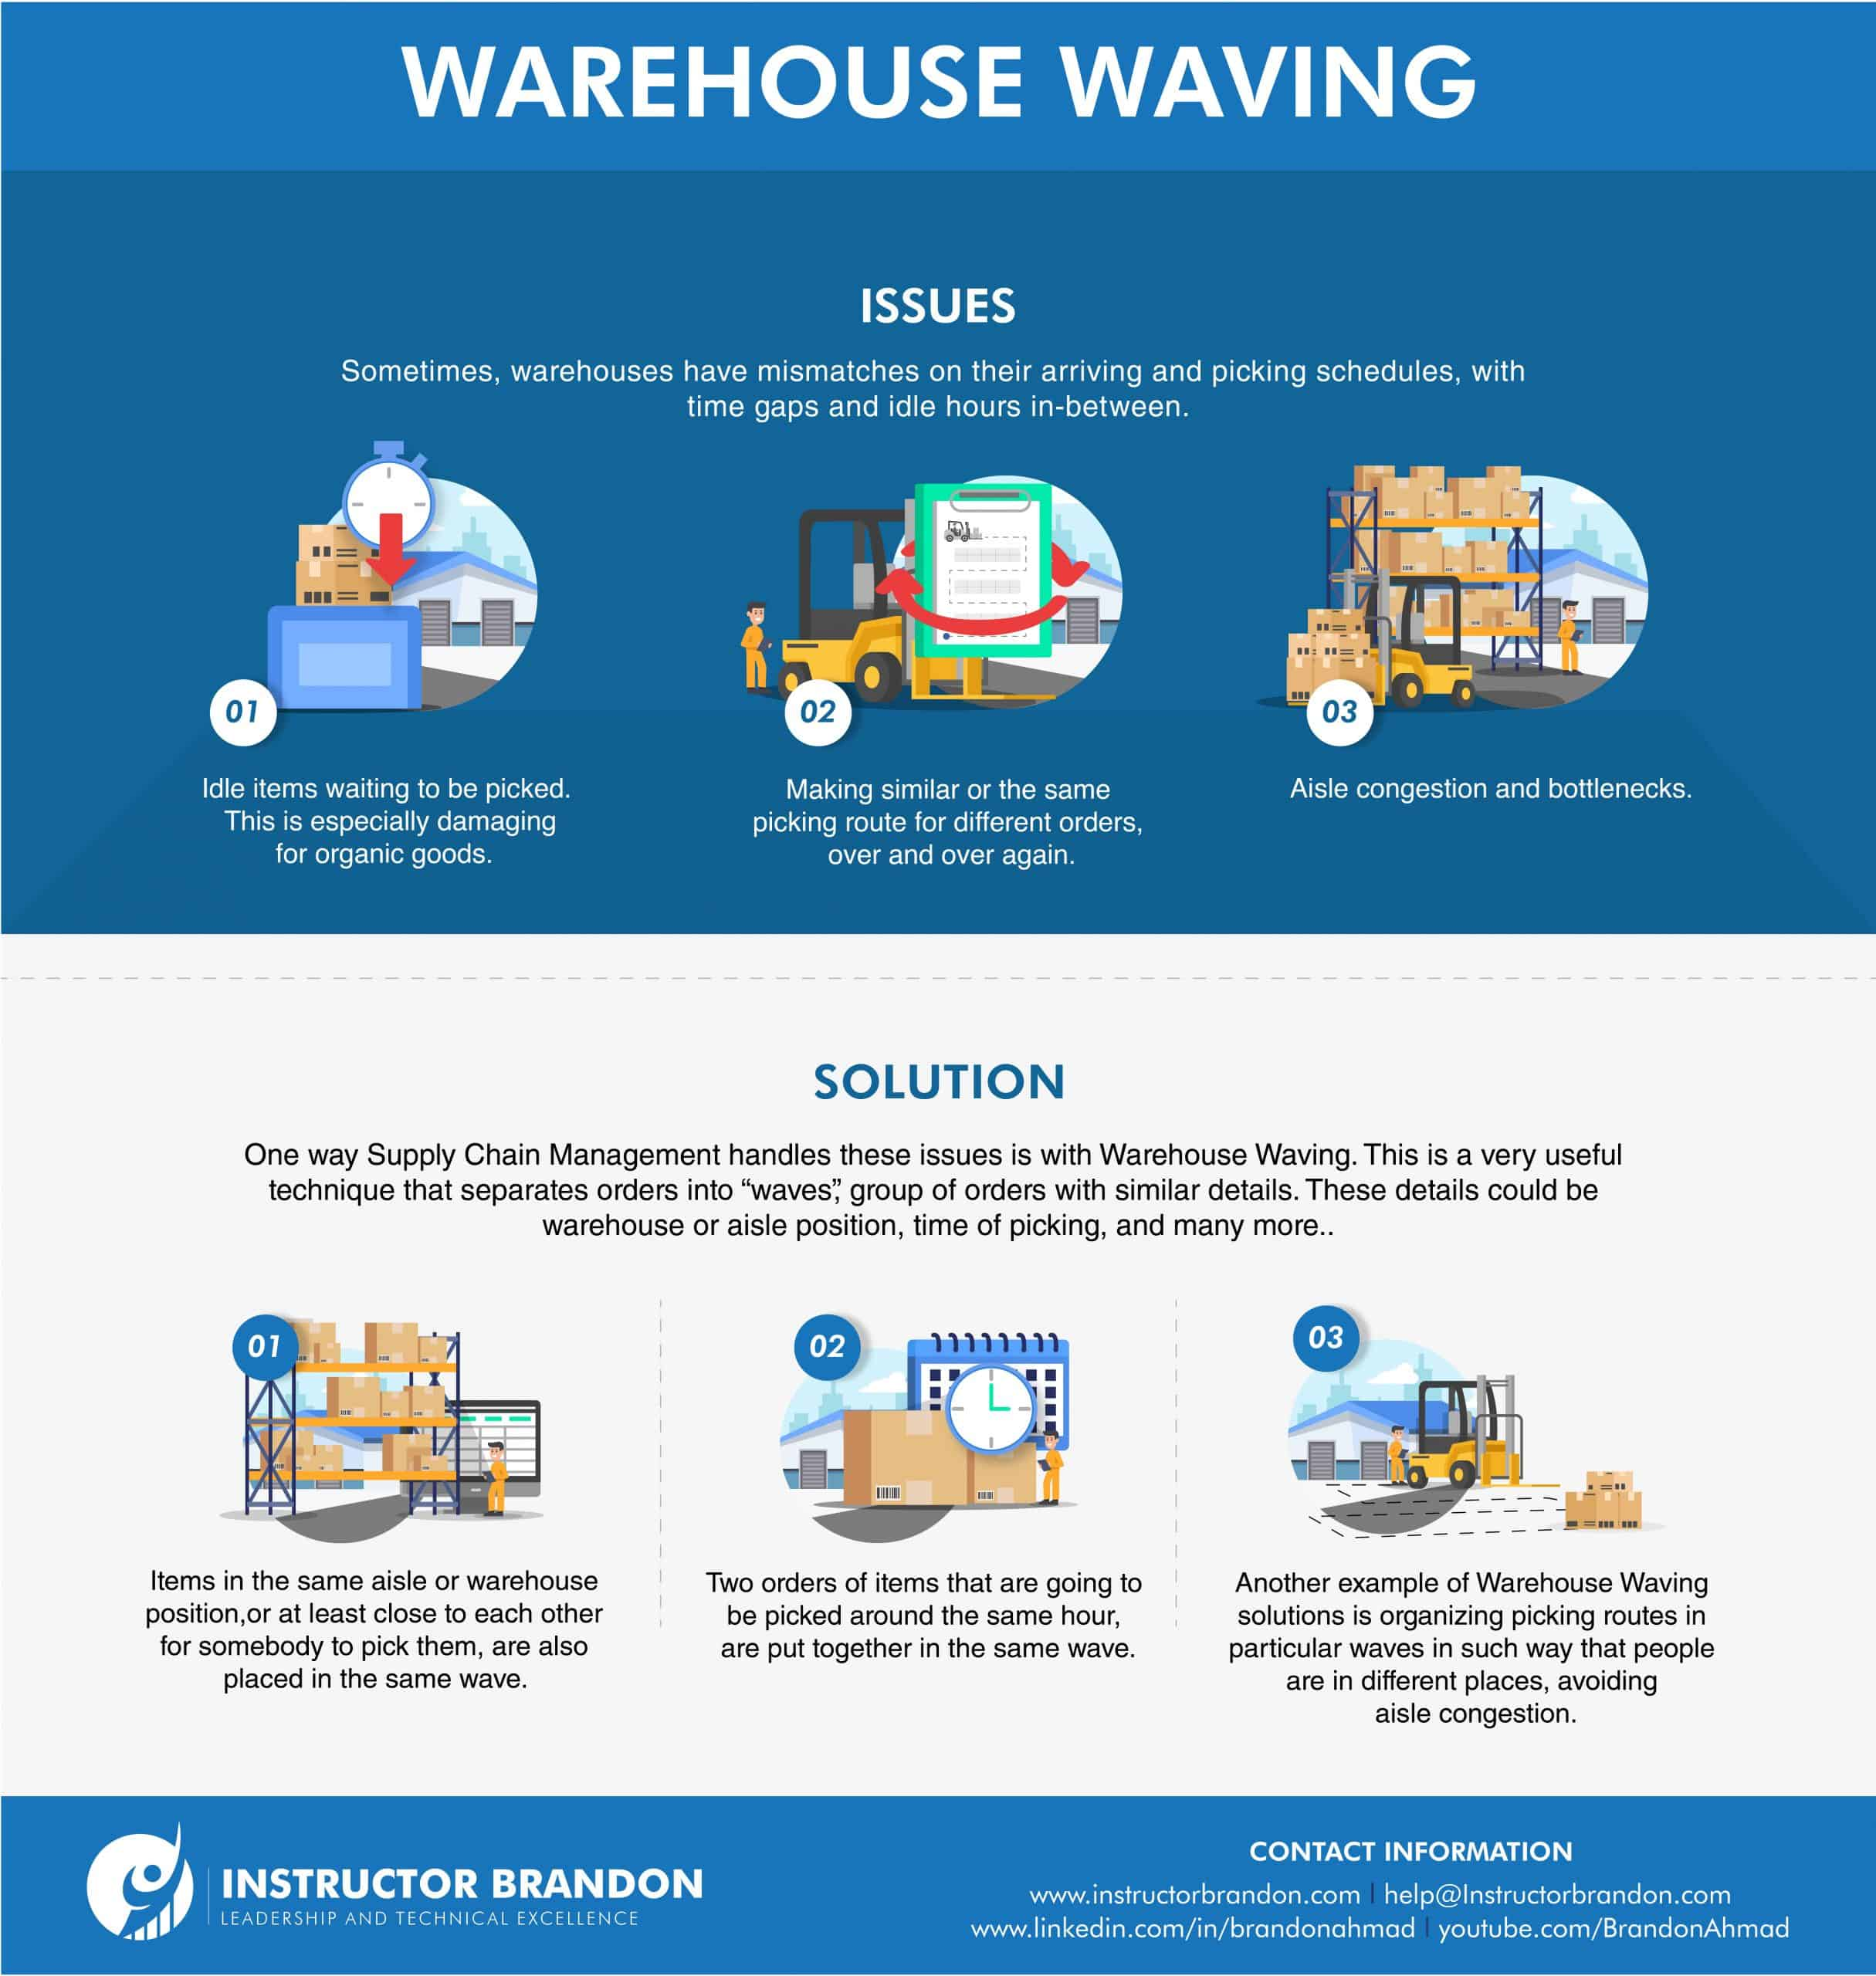 Warehouse Waving Issues & Solutions